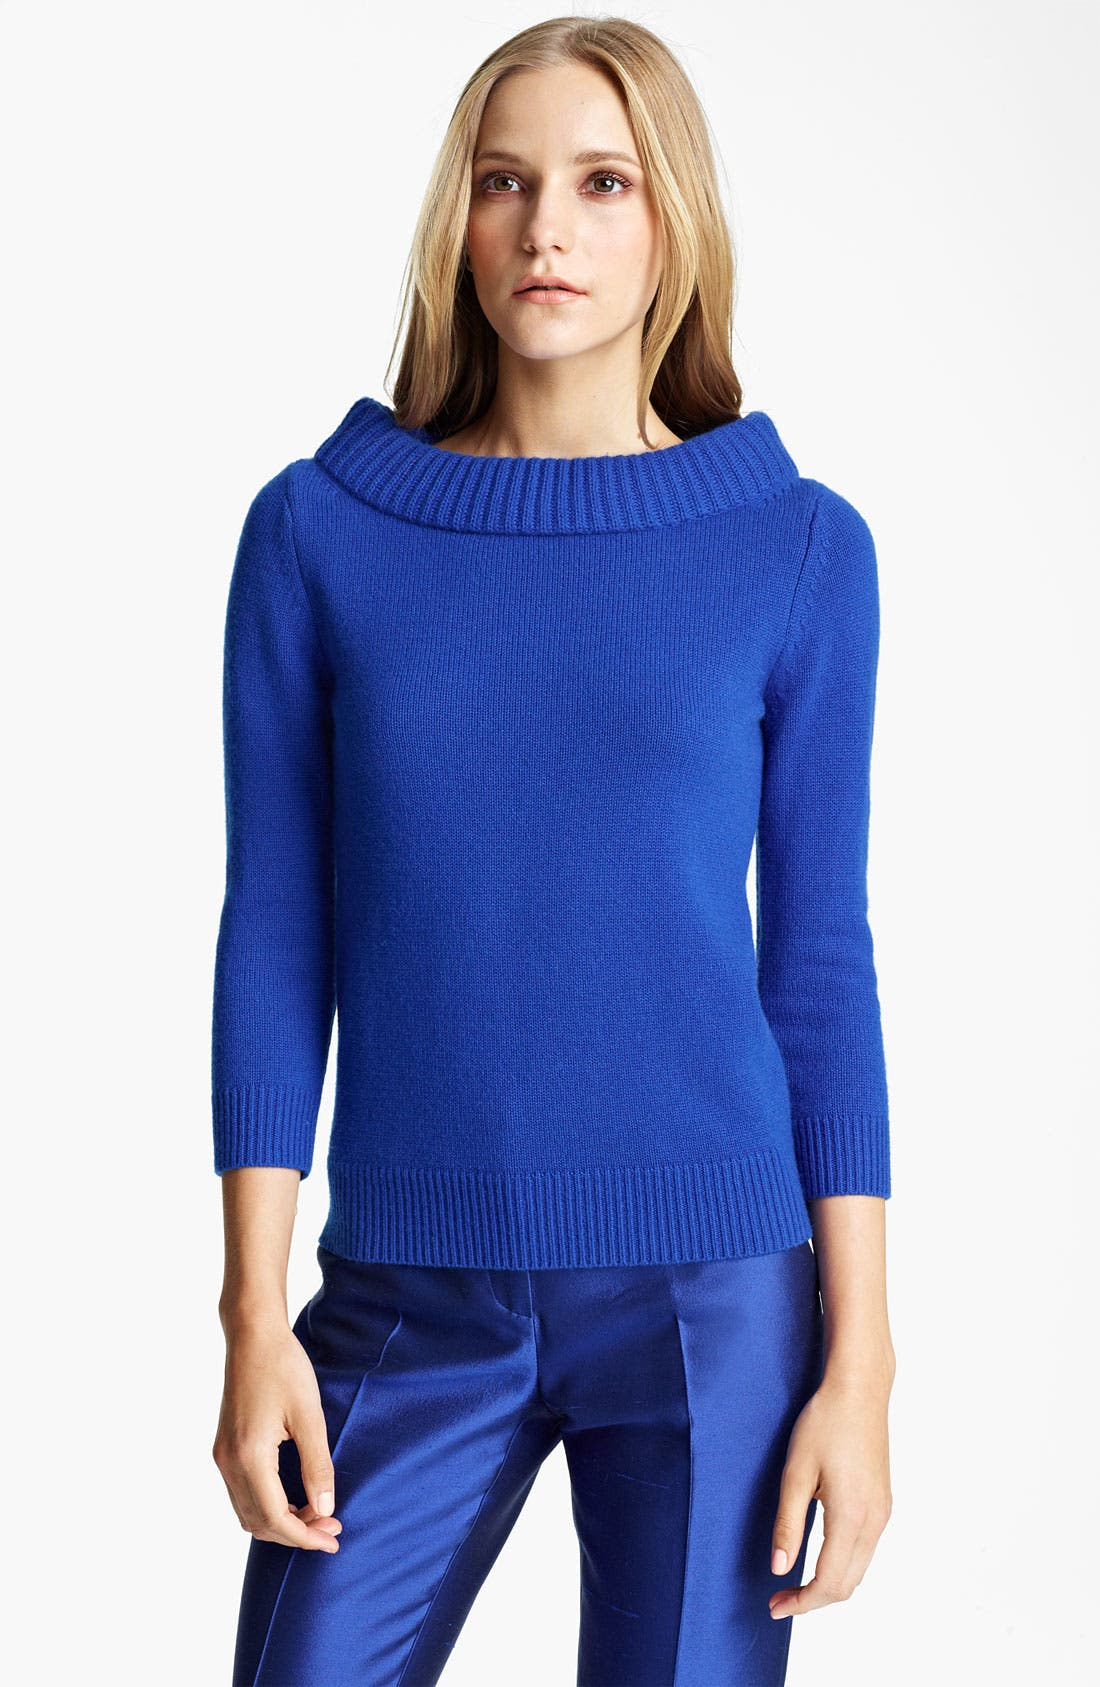 Main Image - Michael Kors Cashmere Sweater